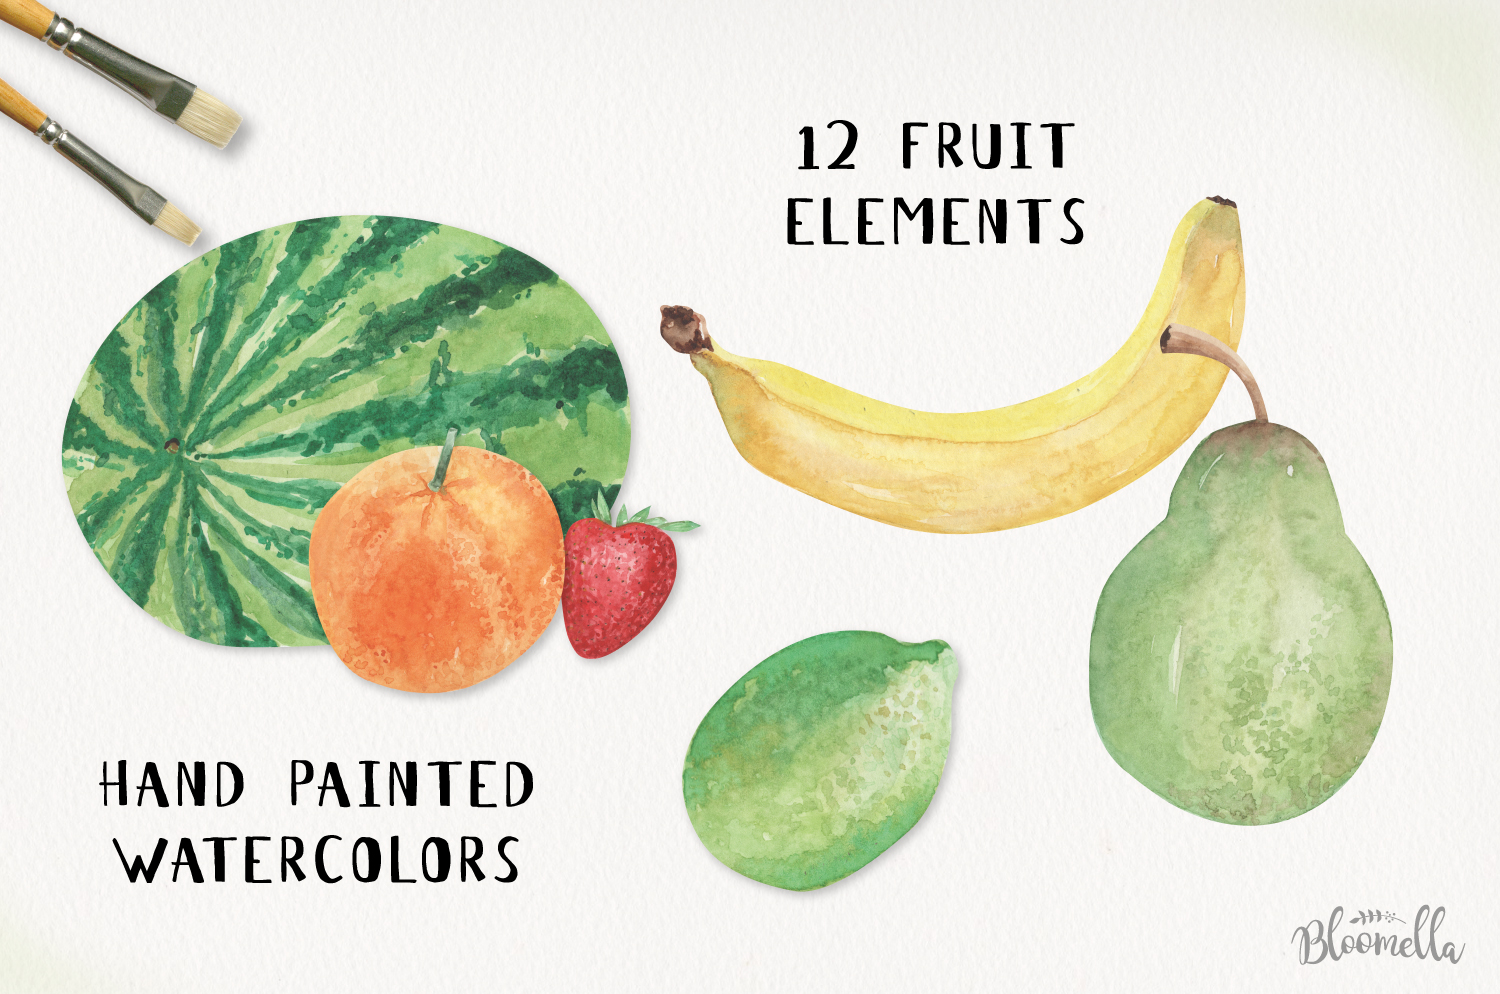 Fruit Watercolor Elements Hand Painted Apple Banana Fun Kiwi example image 2